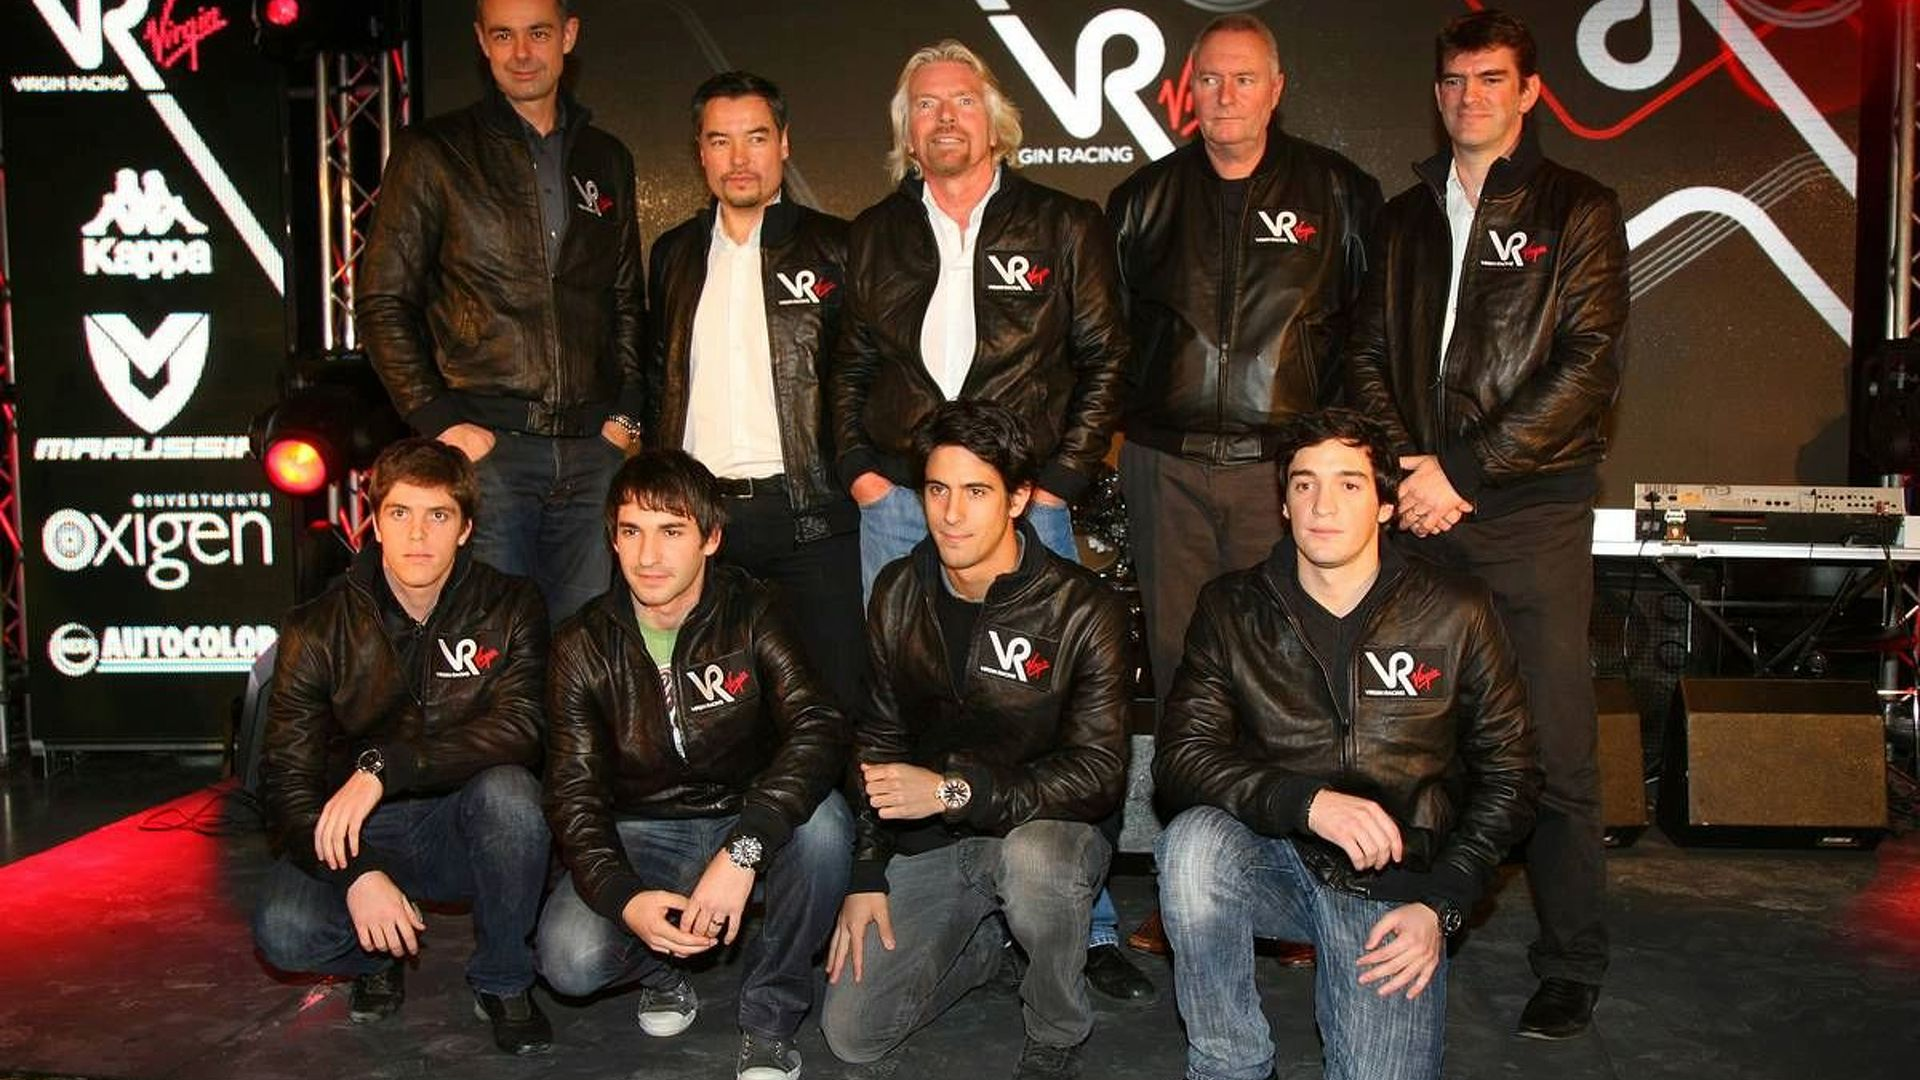 Virgin is F1's only fully British team - Branson